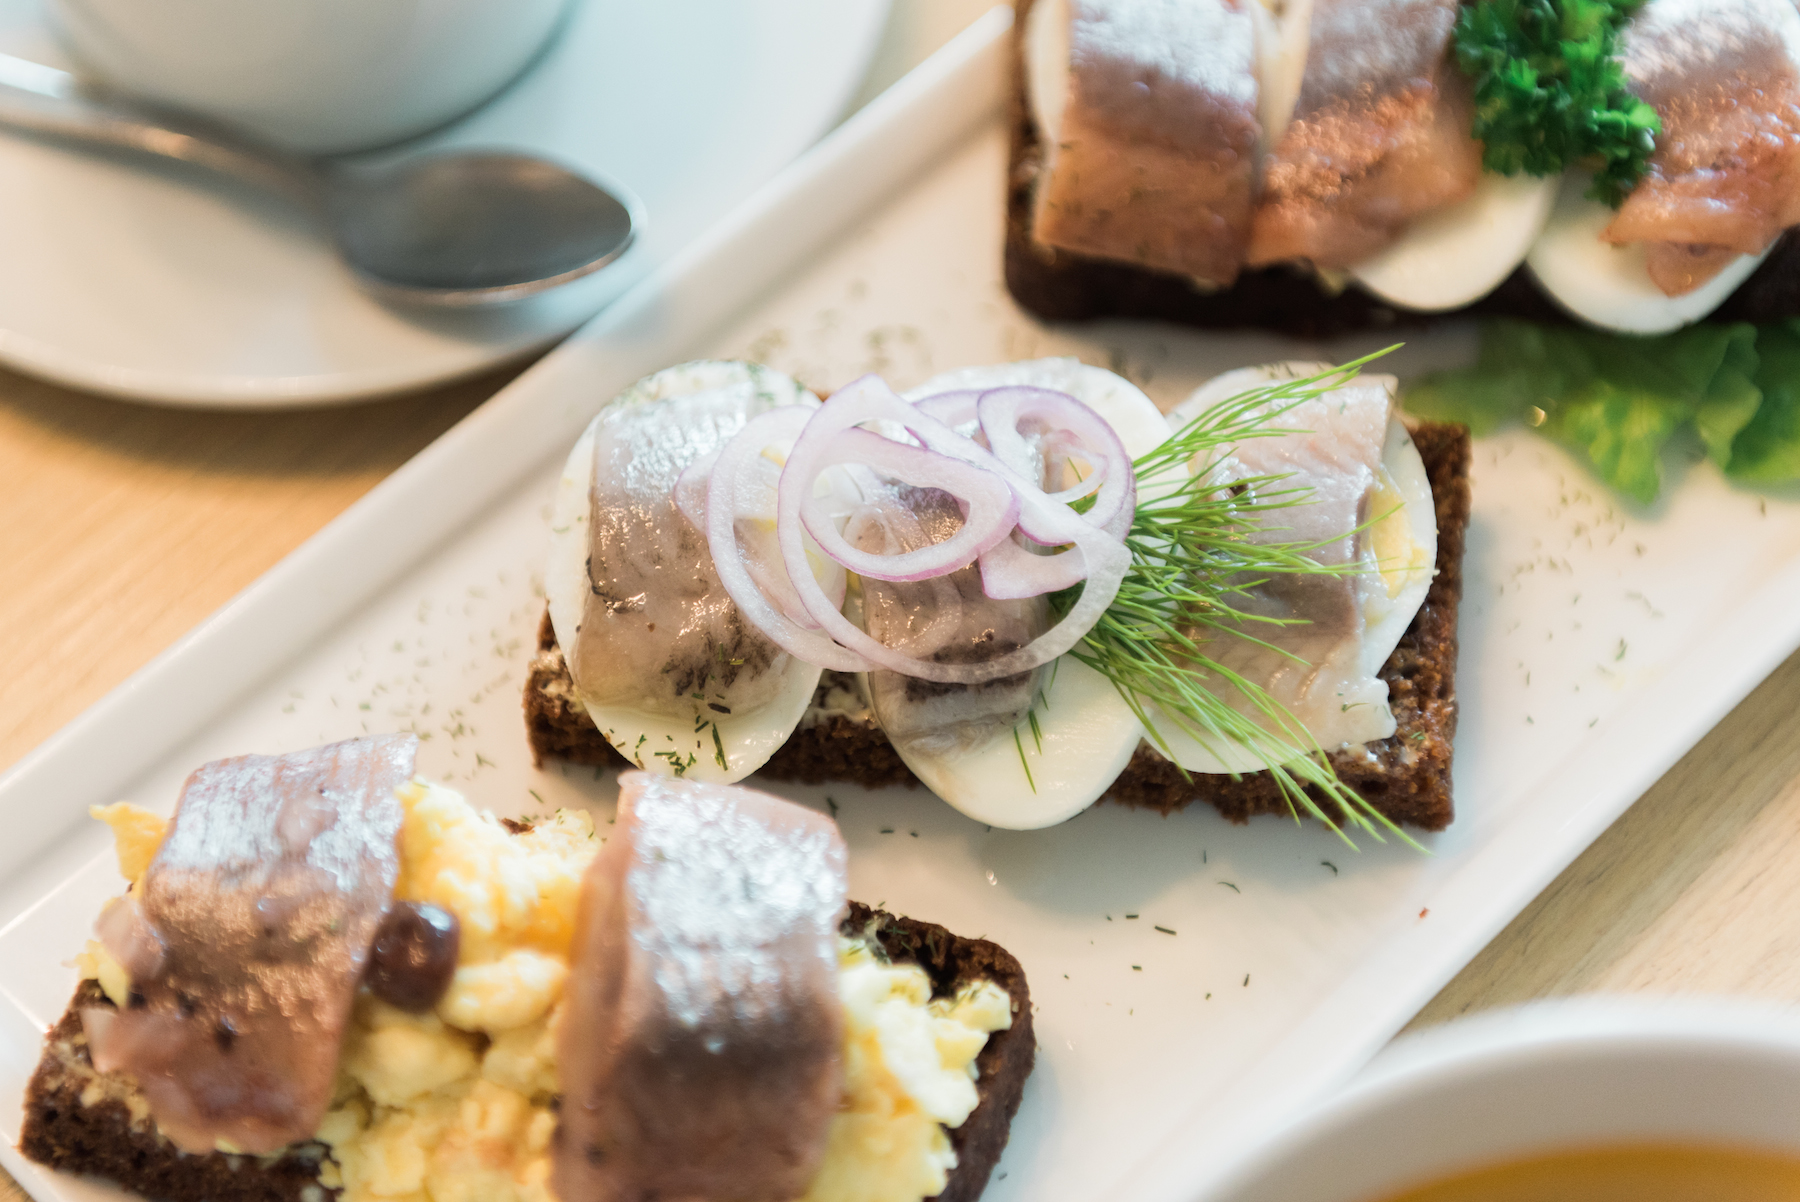 Rye Bread with Egg and Herring